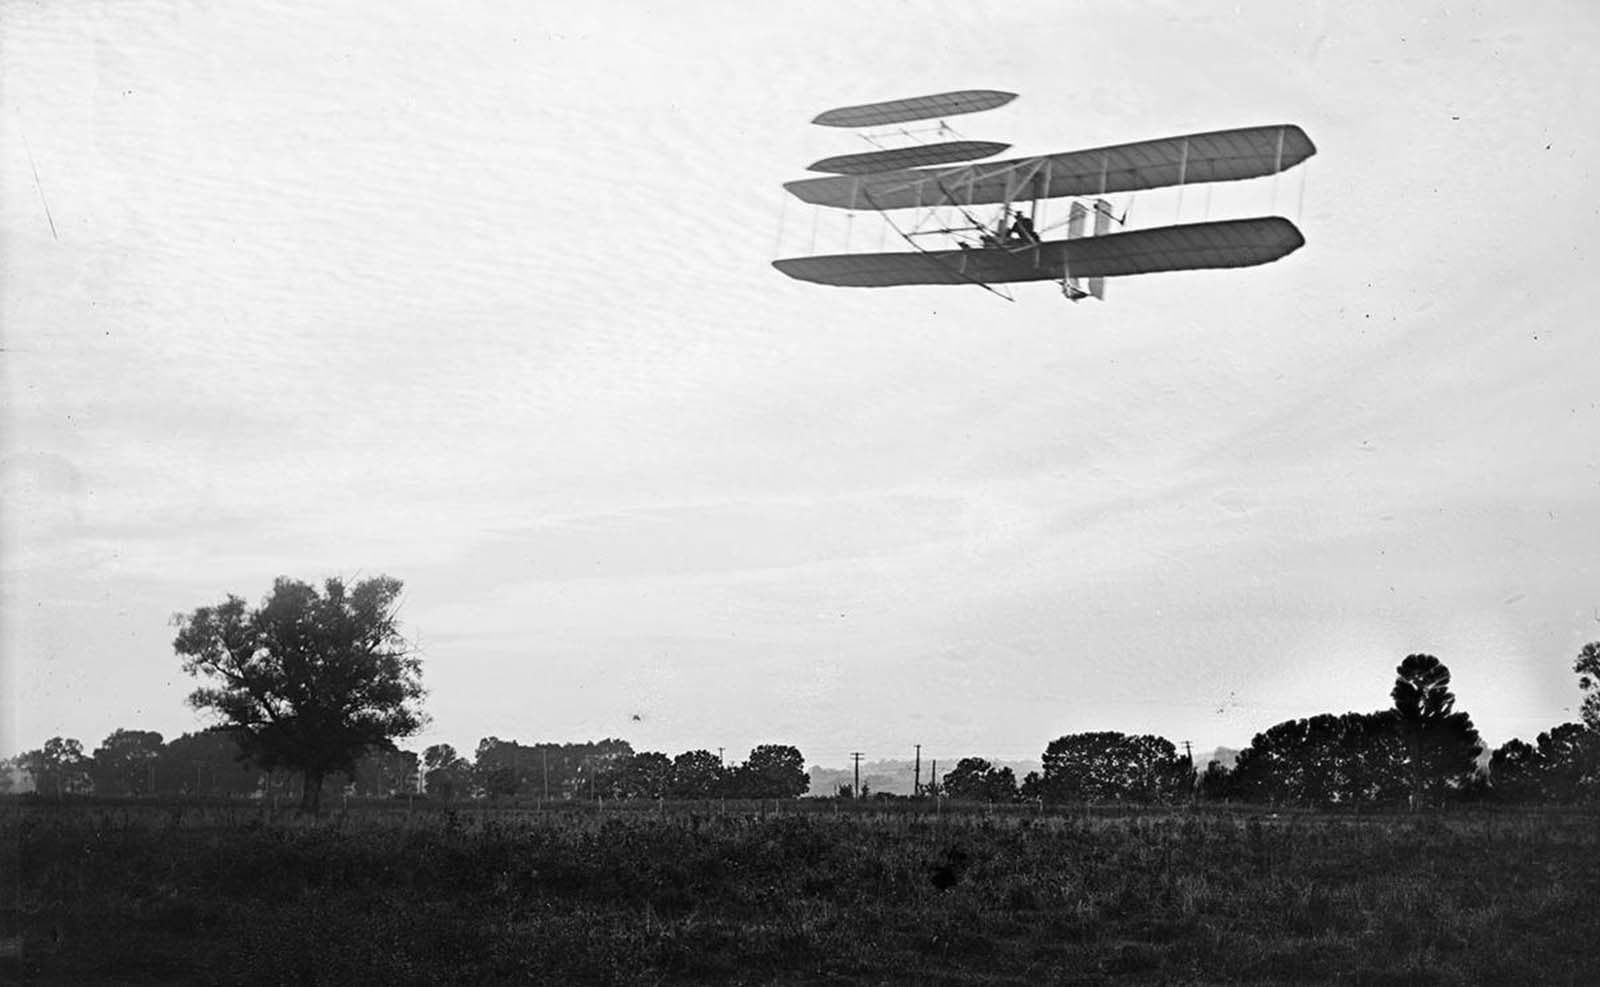 Front view of flight 41, Orville flying to the left at a height of about 60 feet; Huffman Prairie, Dayton, Ohio, September 29, 1905.